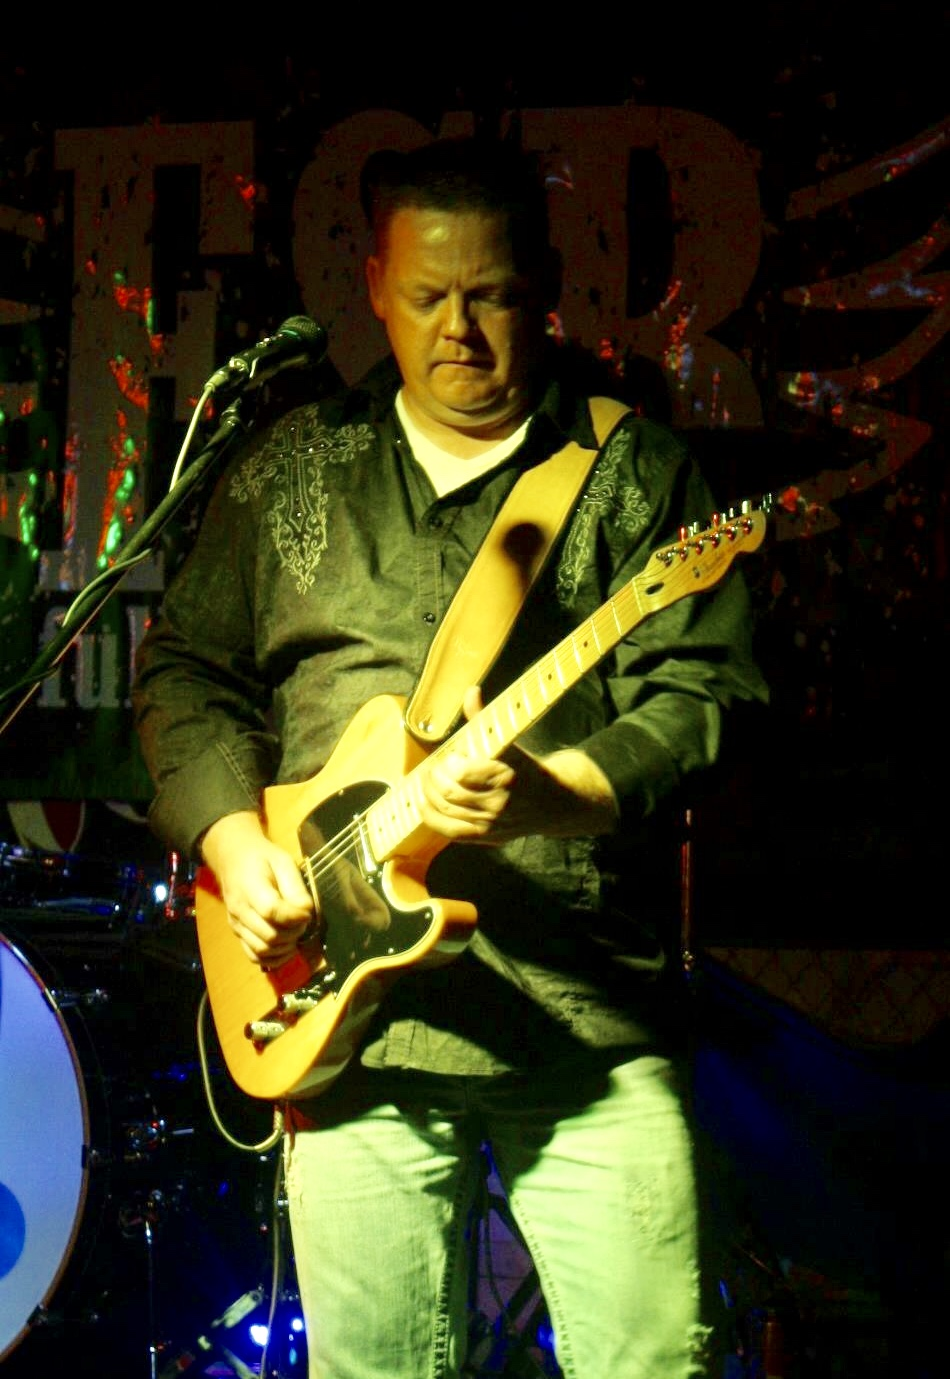 "David Grubb - BUS DRIVER / ASSISTANT TO DAVE MASONArkansas native David Grubb comes from a musical family. His interest in playing music started at the age of 14, inspired by Stevie Ray Vaughn's amazing guitar work. He started studying music, playing guitar and drums. Later, Grubb formed a band with three of his friends that is impressively still together today - more than 15 years later.Grubb's career in the transportation and music industry has taken him all over North America. He started in the transportation business at the age of 18 and has worked in many aspects of transportation from DOT regulations, route scheduling, customer relations and overseeing safety operations for some of the nation's largest transport companies. At age 32, he began operating his own trucking company and was a contractor for the FedEx Corporation for 10 years. After many years of looking to further his career in the music industry, he sold his trucking company and moved to Nashville.Now, you'll find Grubb behind the wheel of the tour bus or behind the merch table.When asked what it's like traveling the country with the Dave Mason Band, Grubb replies, ""It's like being on a working vacation with your family. Everyone makes sure everyone is taken care of."